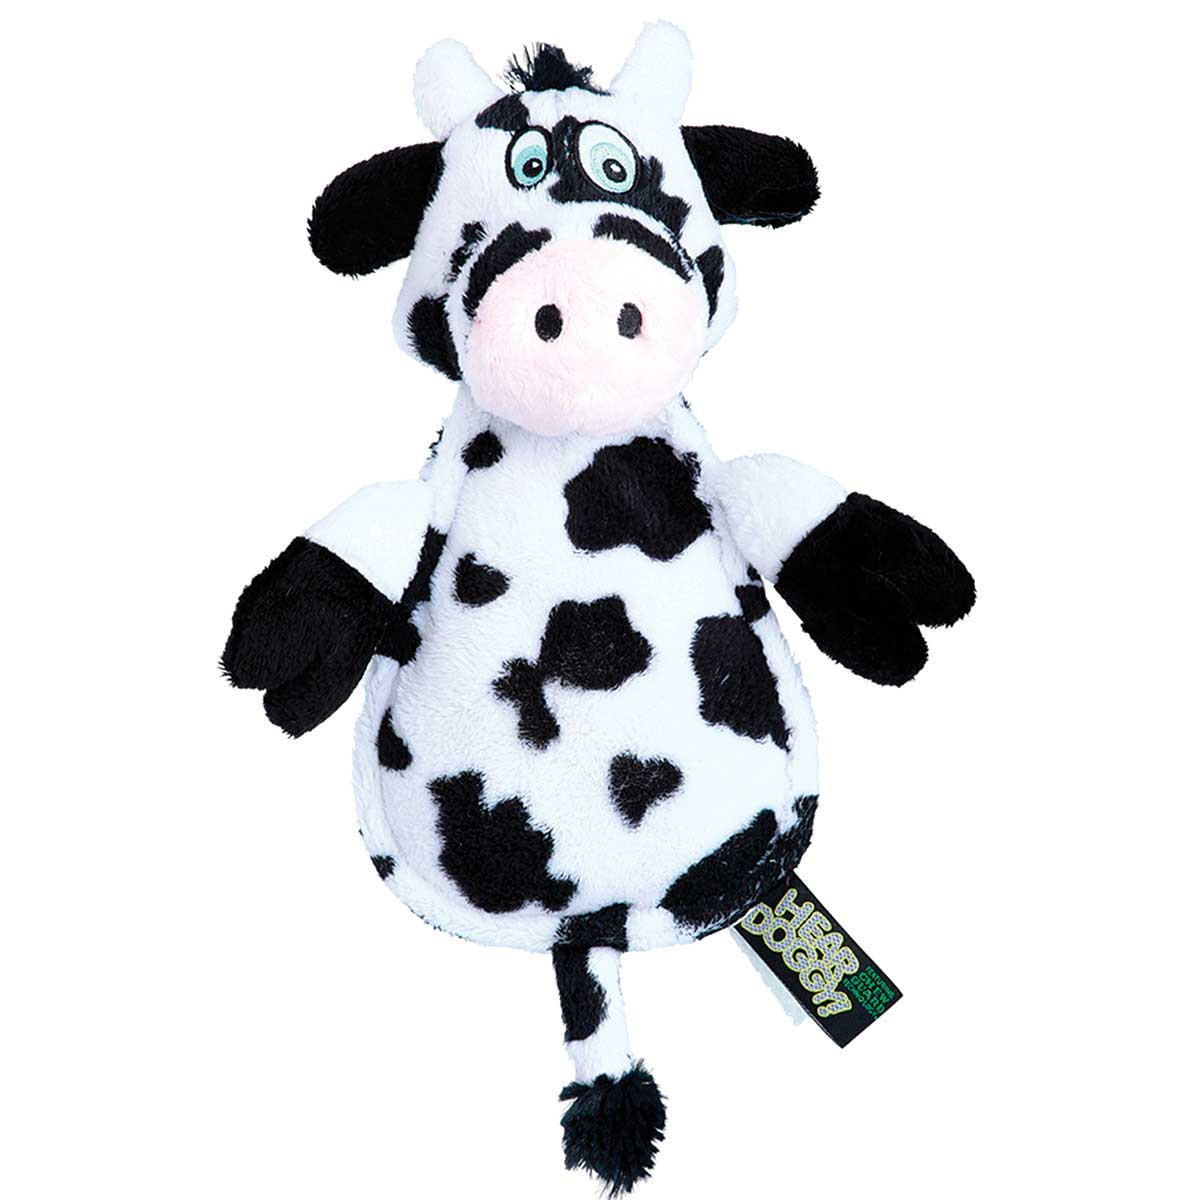 Hear Doggy Flat Cow 7 inch with Chew Guard Technology Dog Toy